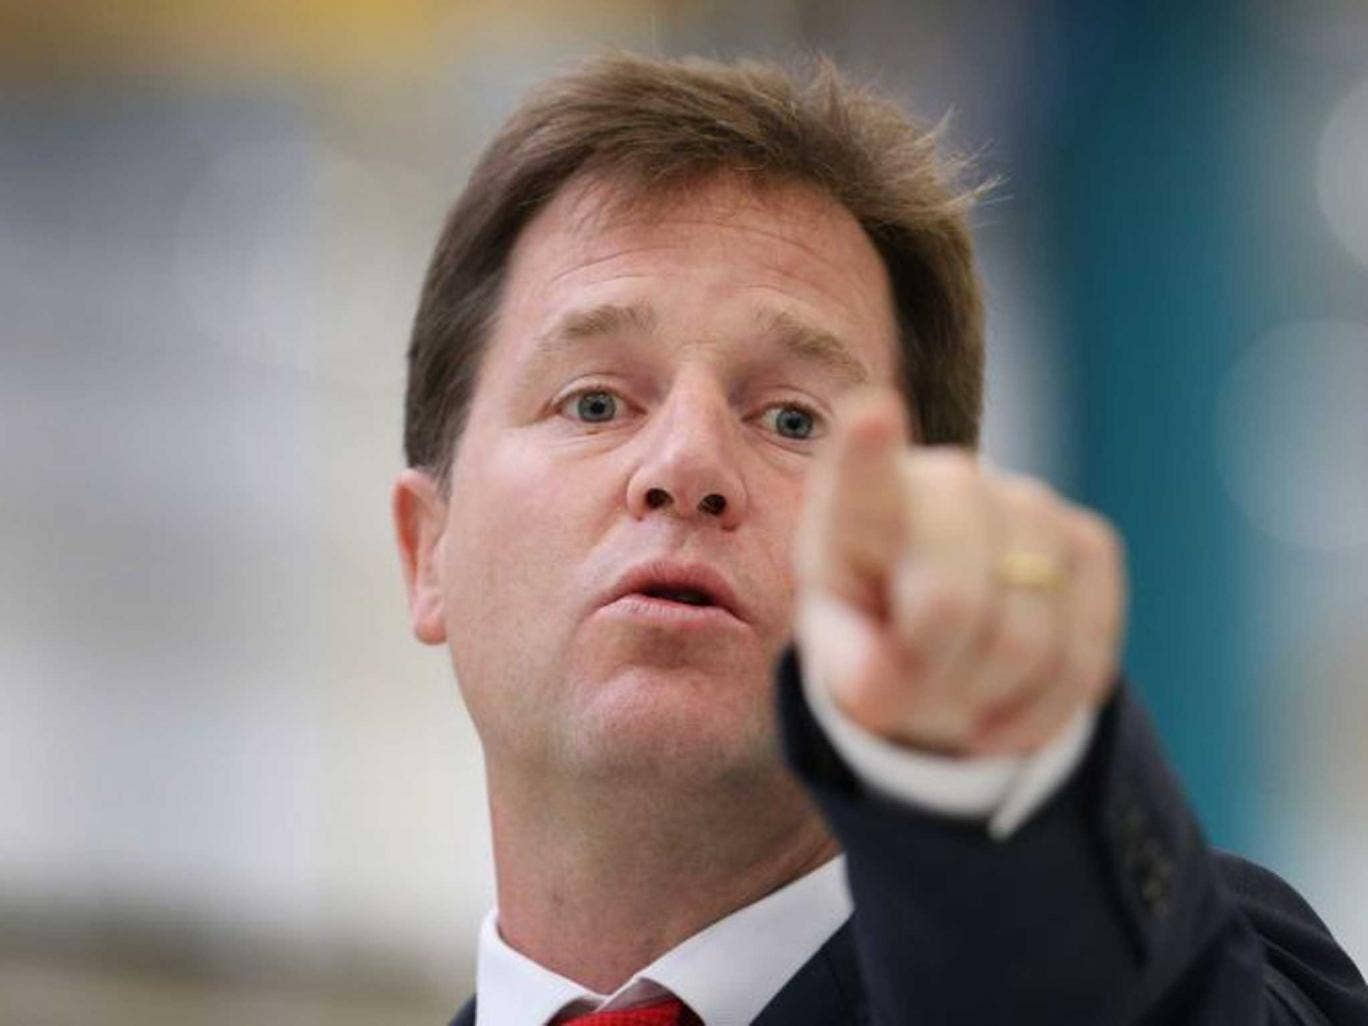 Nick Clegg's plans for all female shortlists could drastically change the make-up of the Liberal Democrats